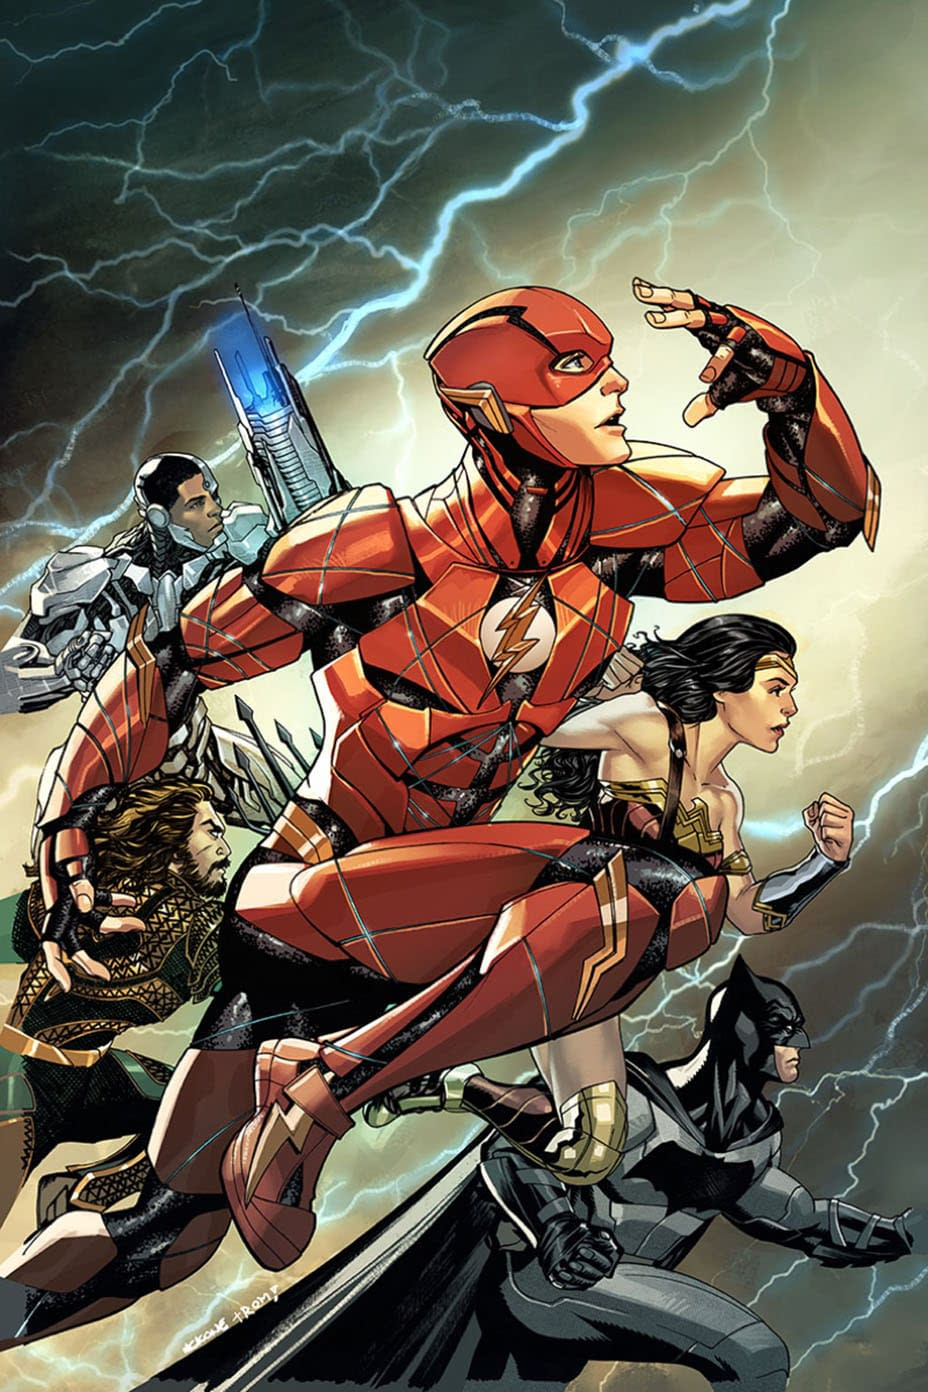 Has The Nu52 Returned, Or Are These Justice League Movie Themed Variants By Mike McKone And Terry Dodson?